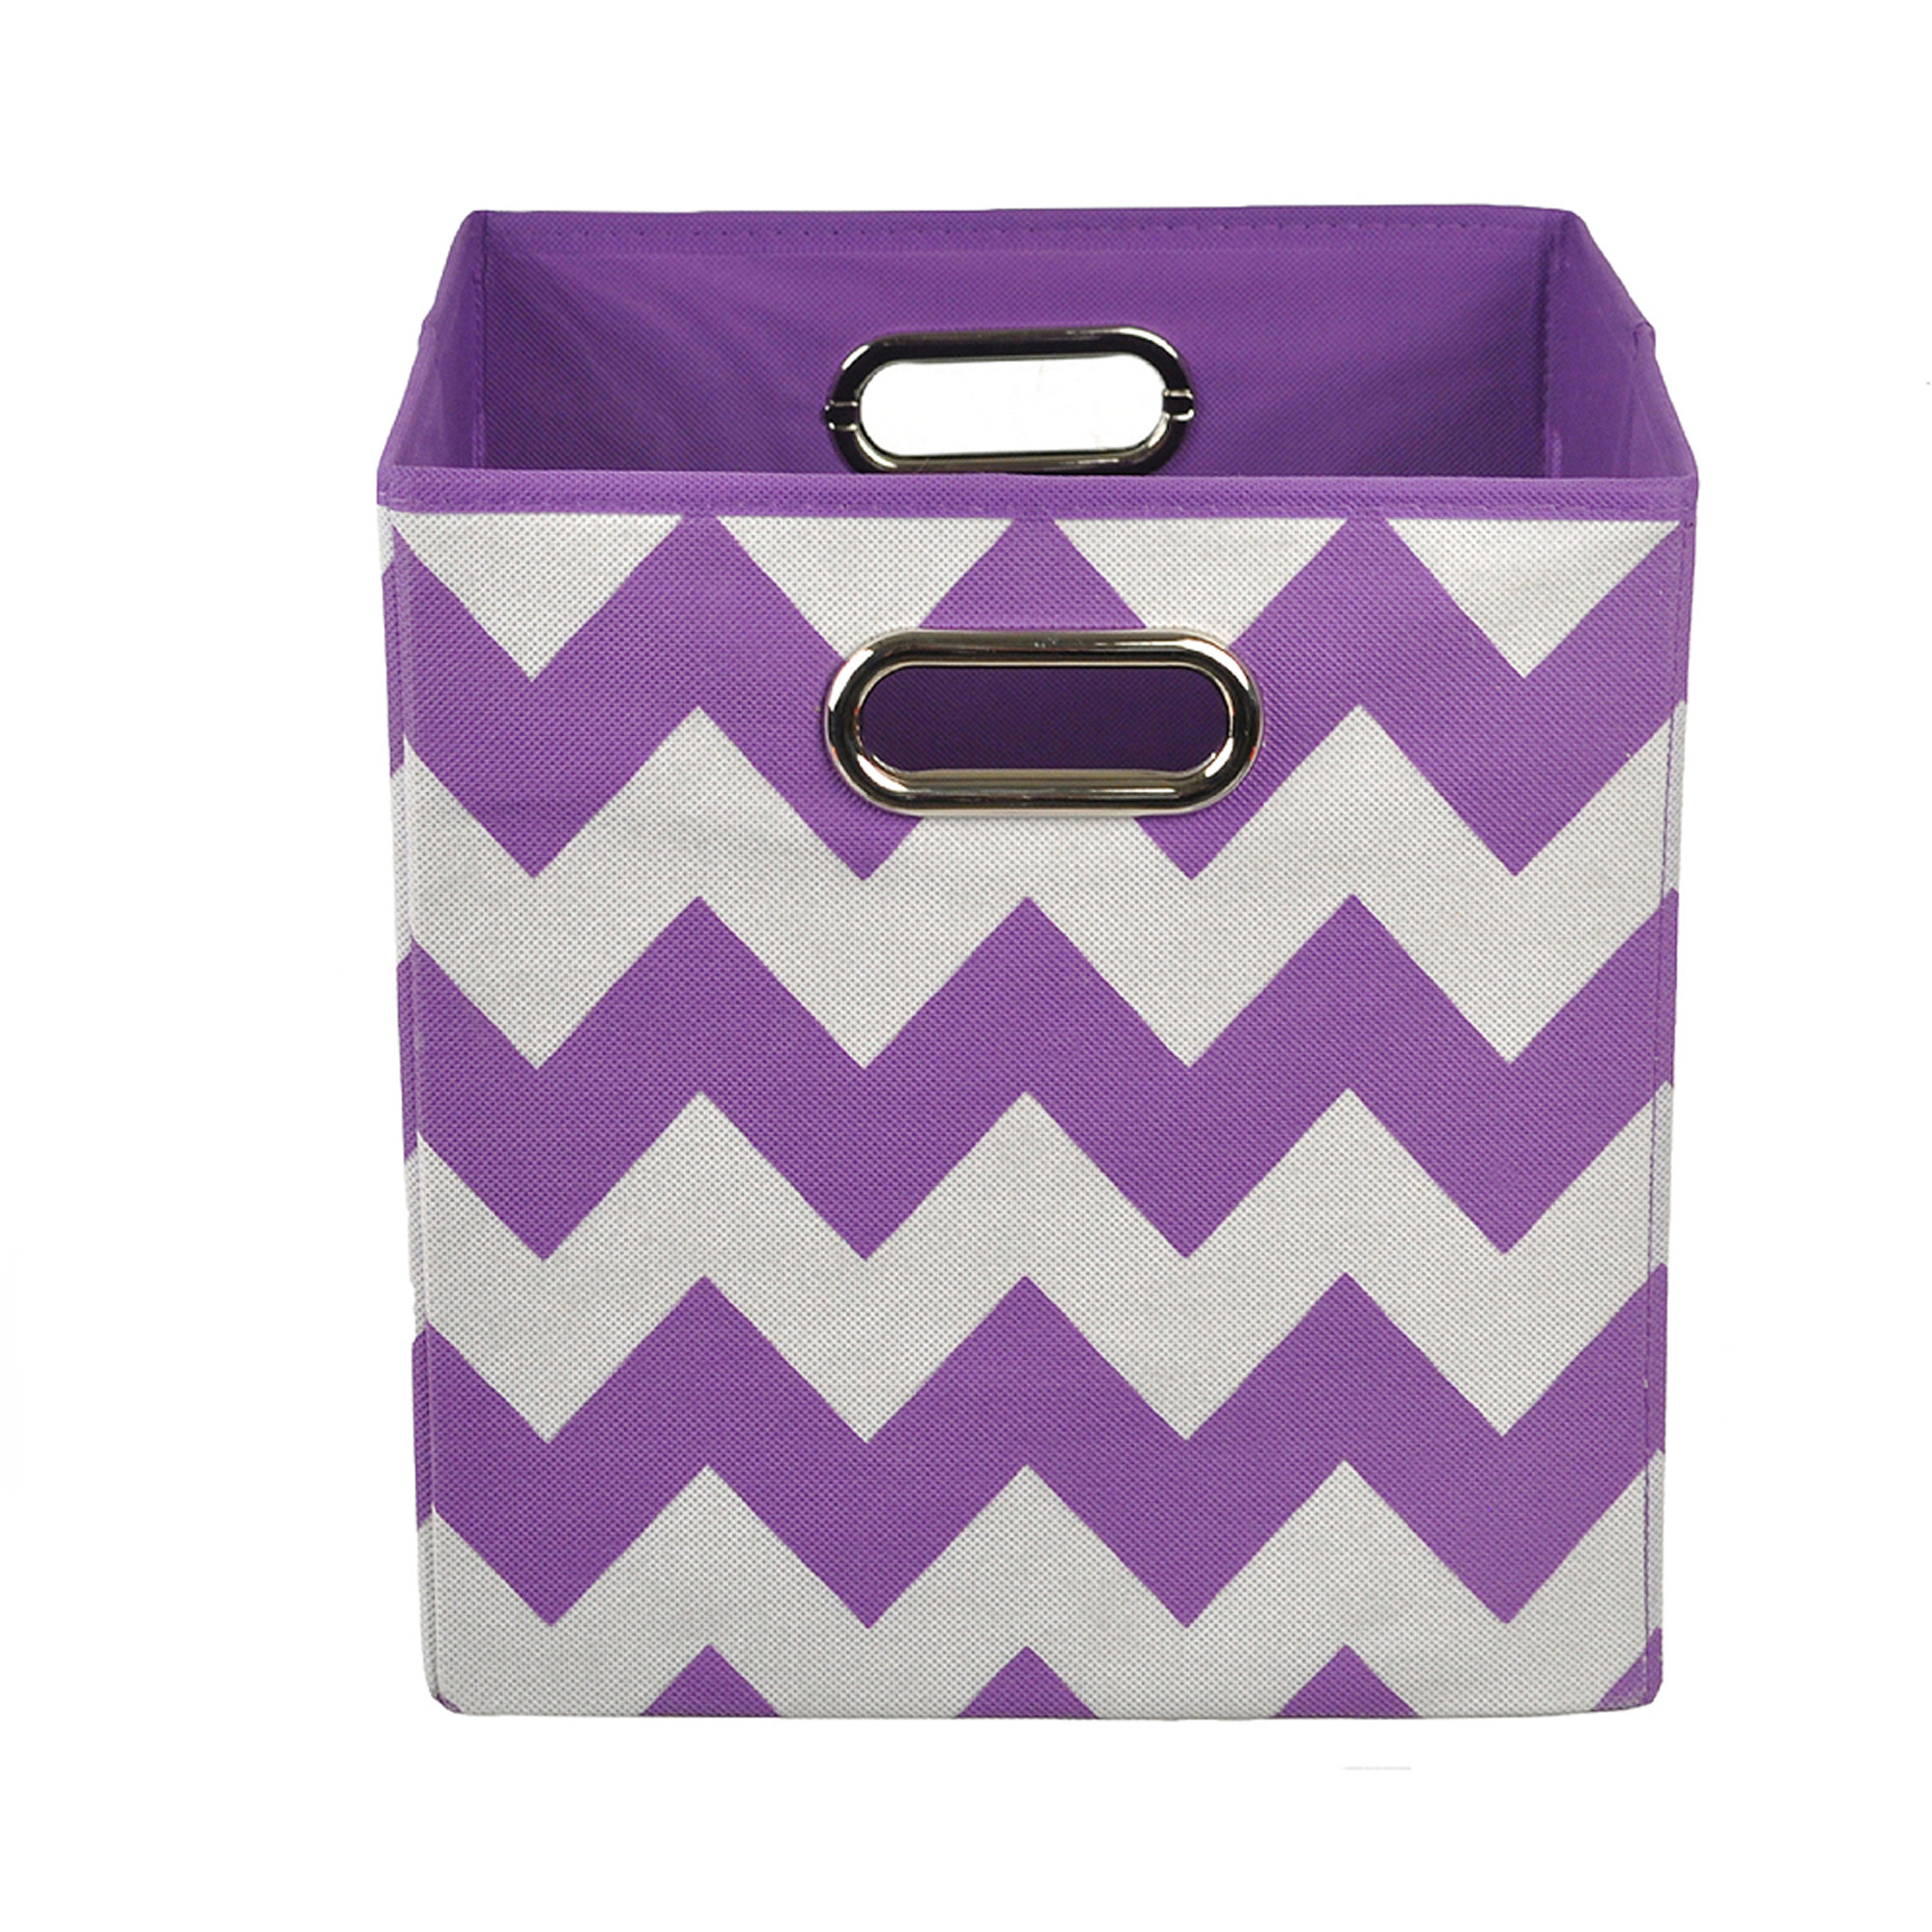 Modern Littles Color Pop Folding Storage Bin, Purple Chevron by Modern Littles